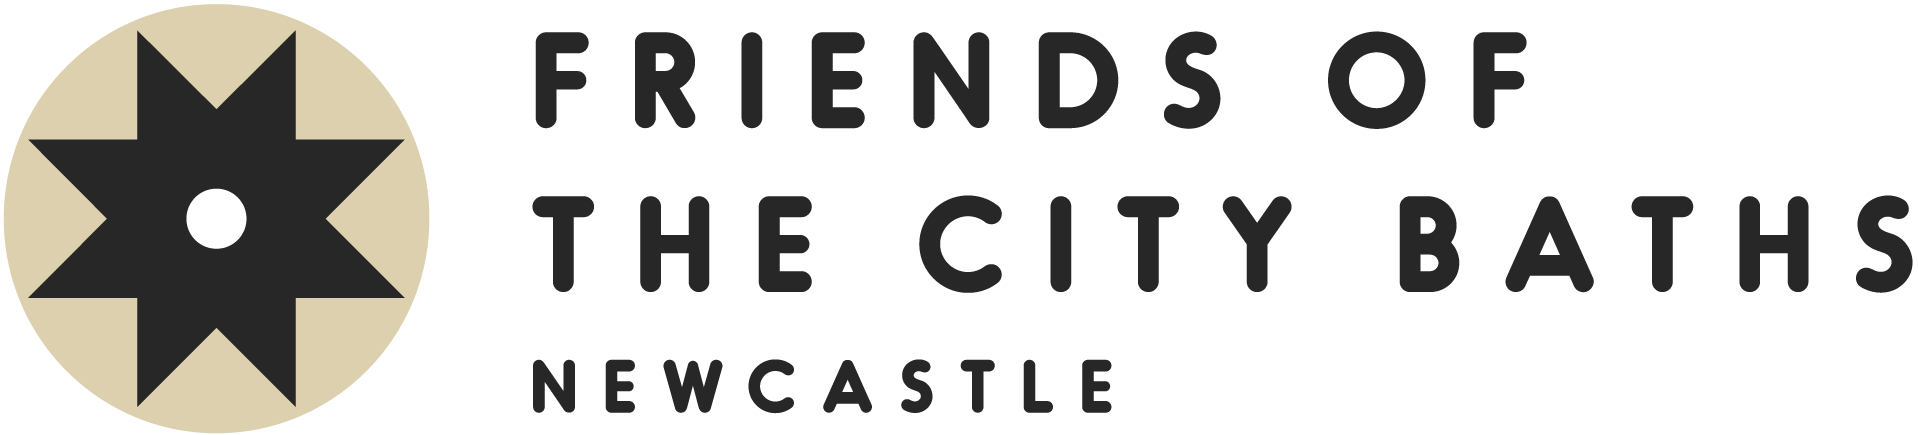 Friends of The City Baths, Newcastle